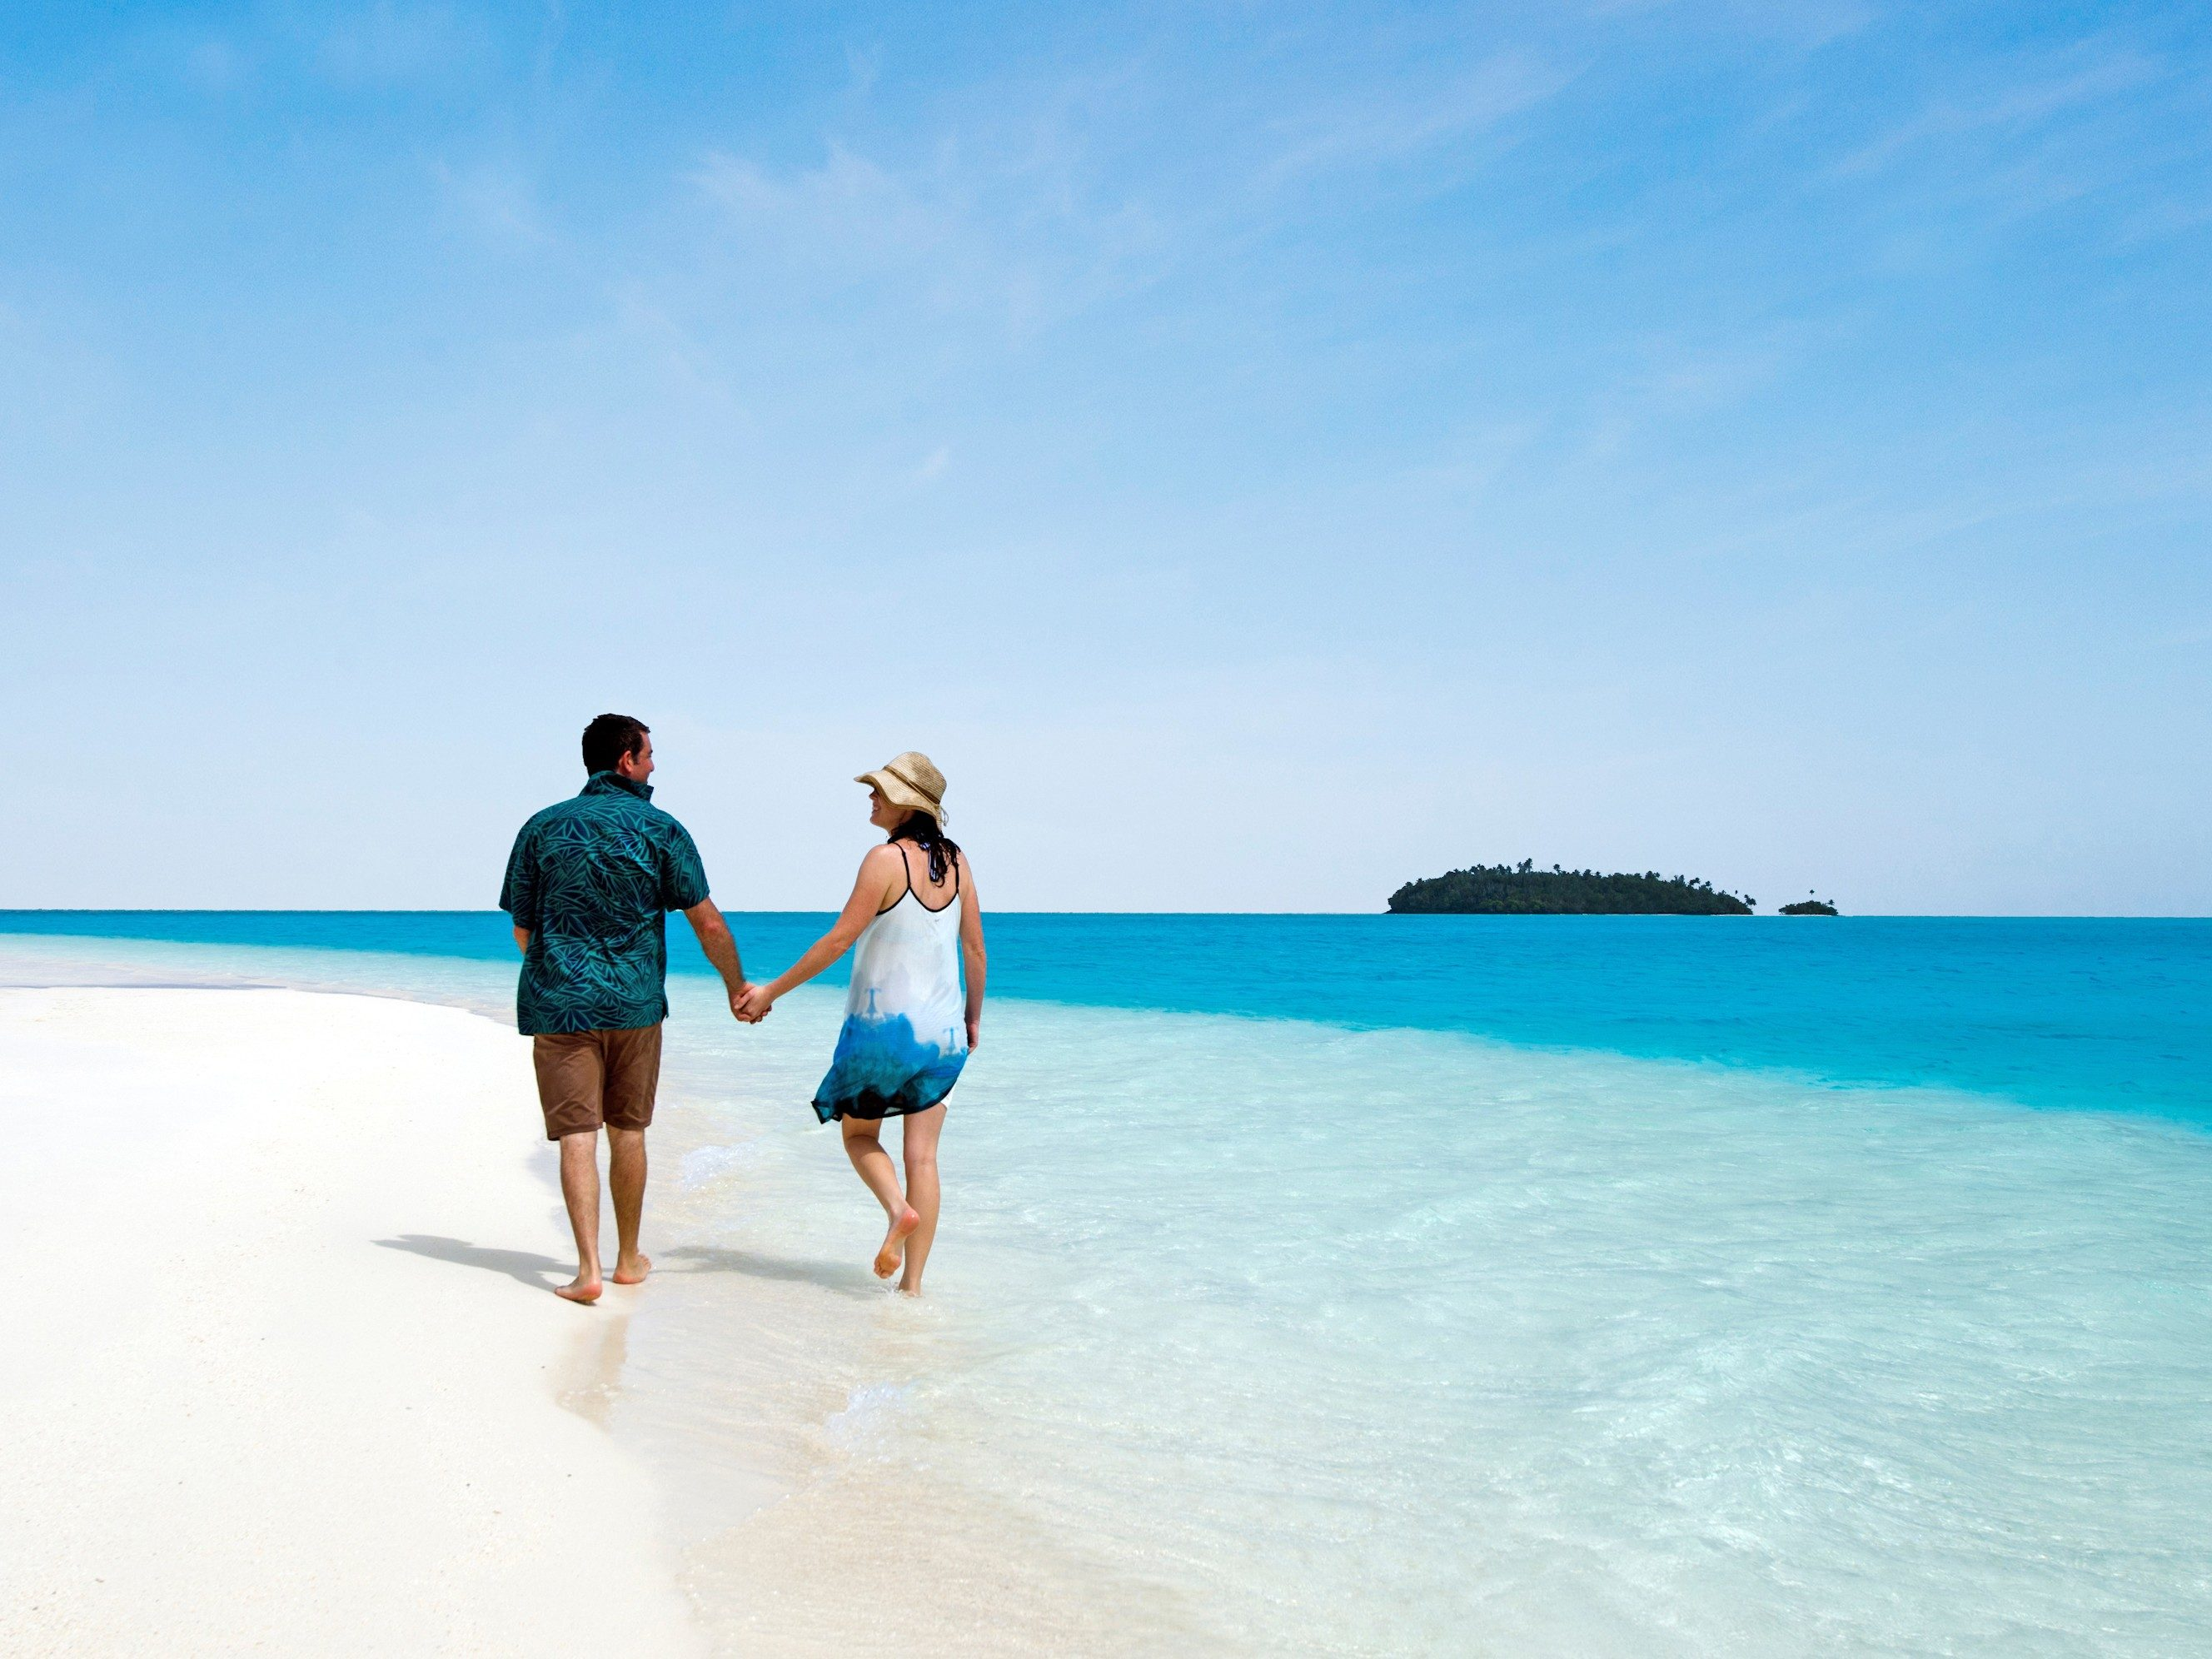 World's 10 Sexiest Places: Cook Islands, the South Pacific